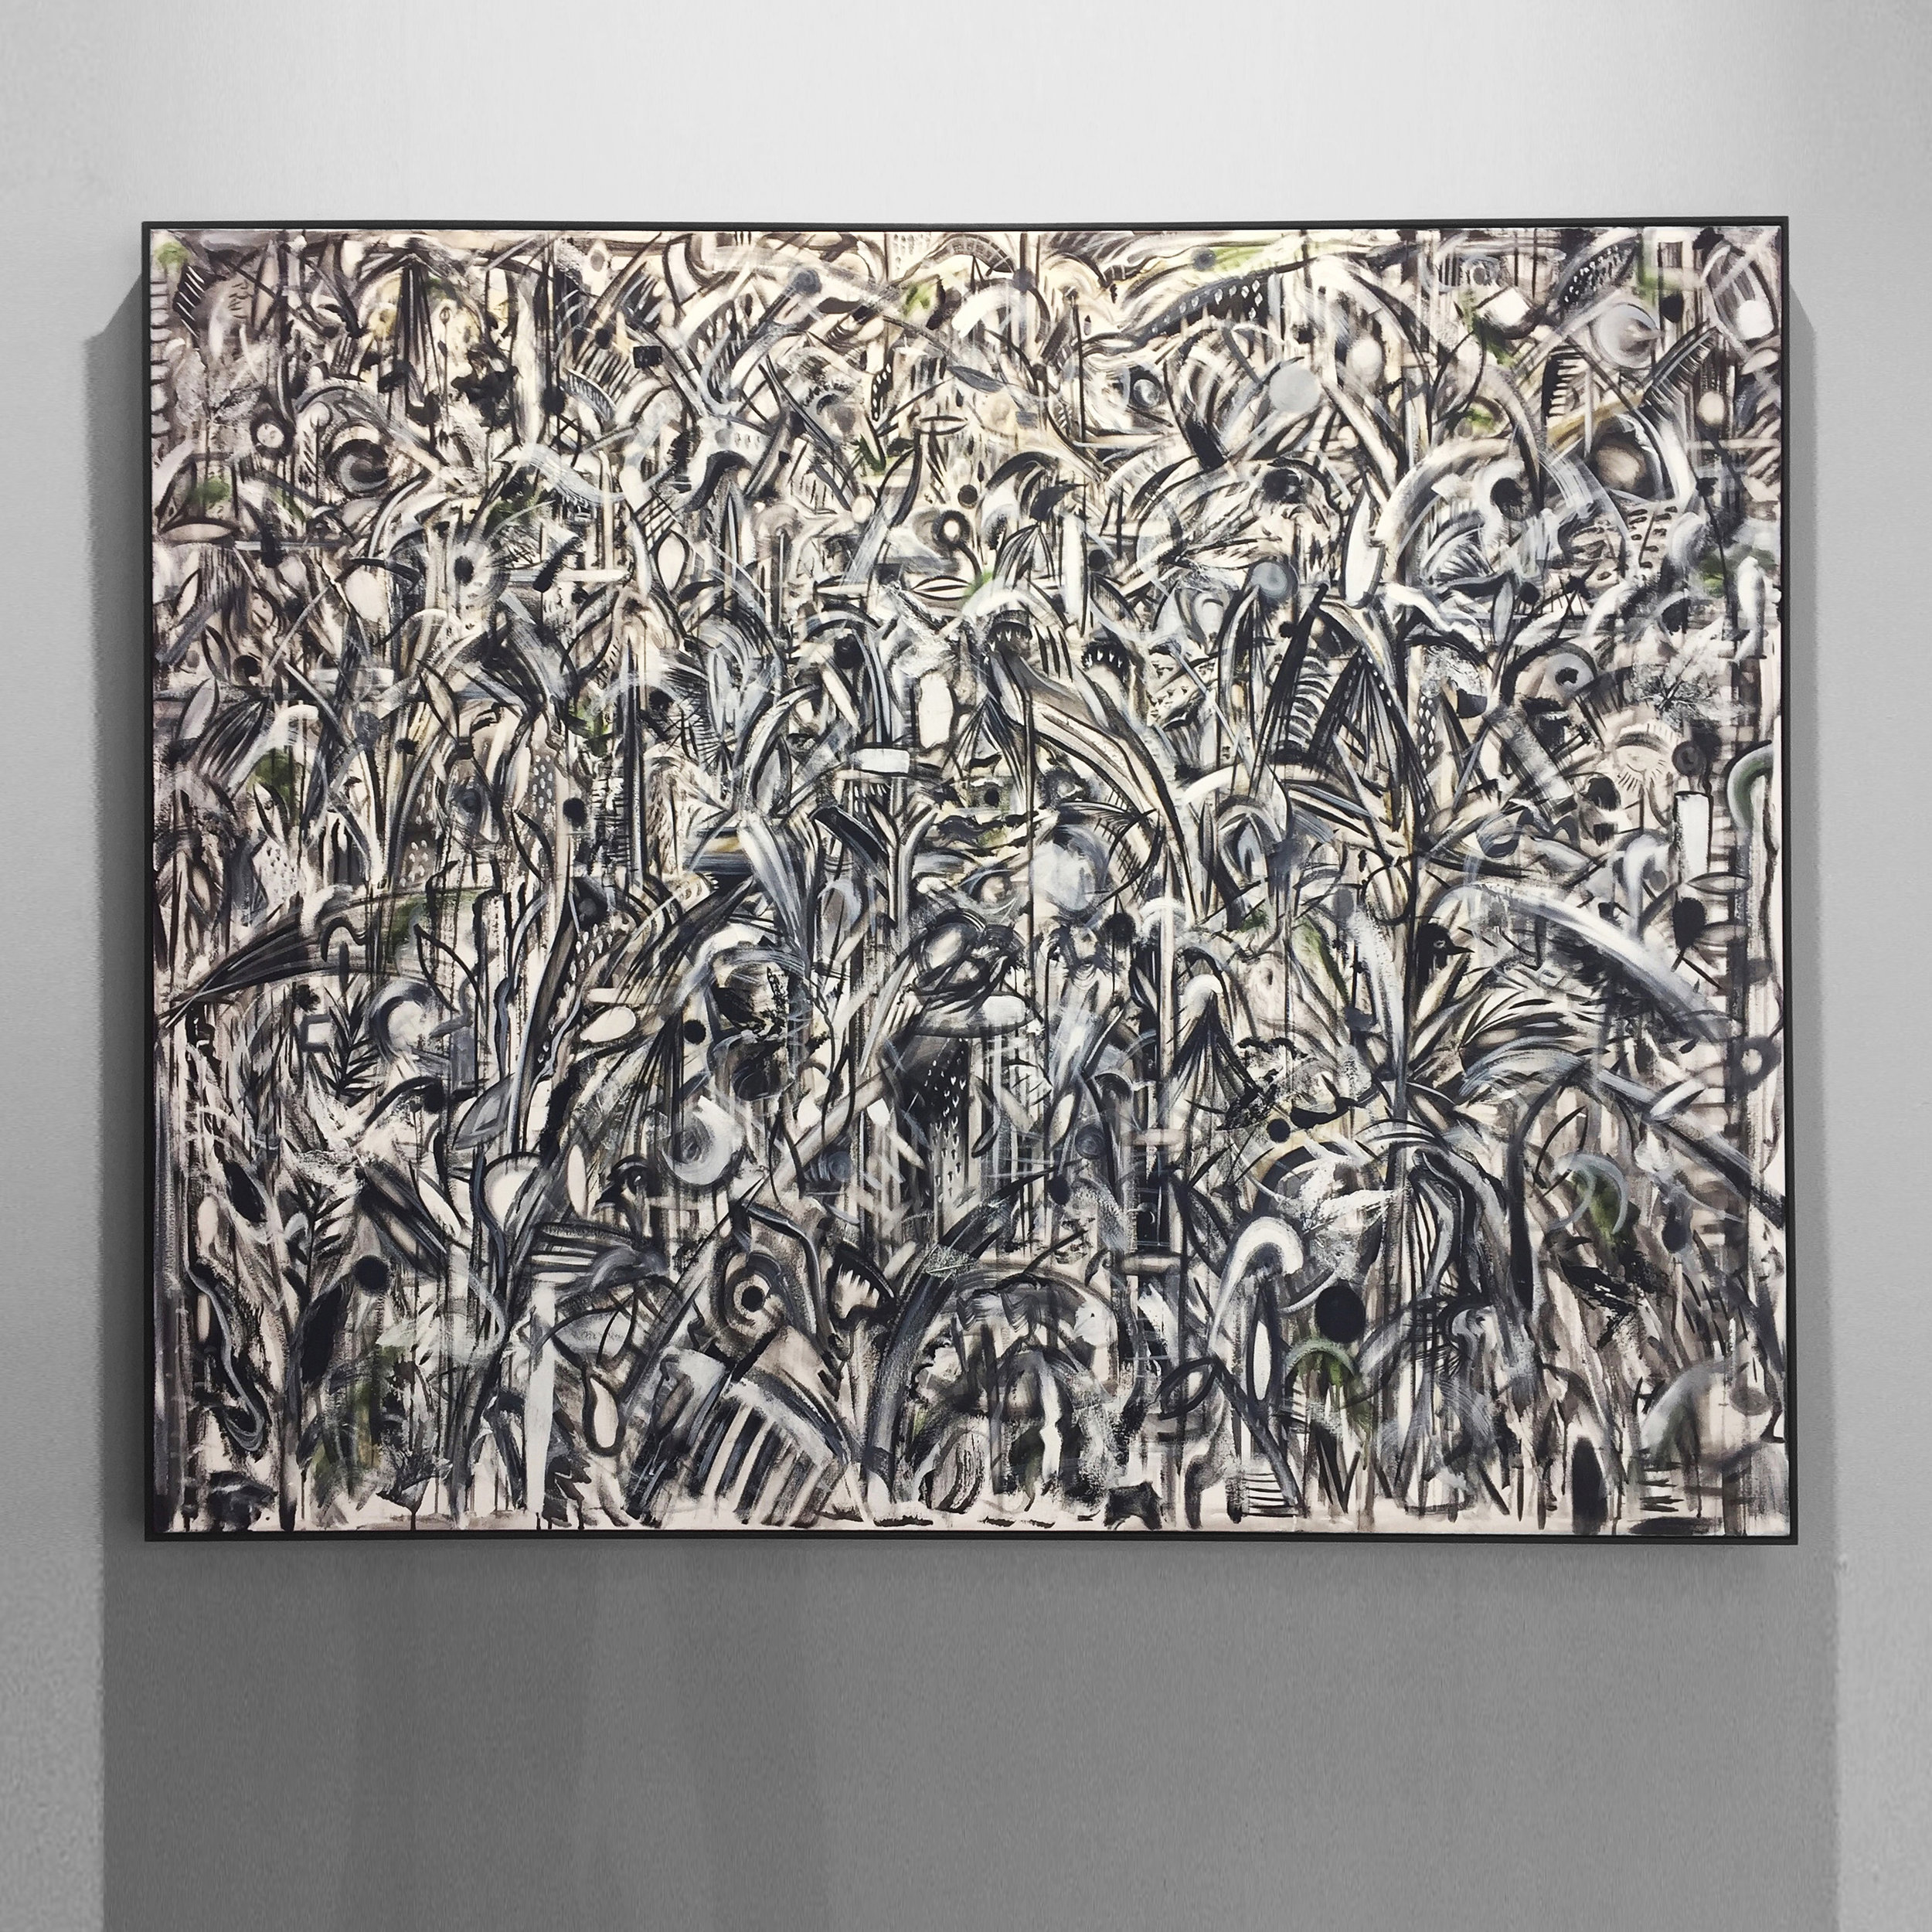 traverse, traverse, the forest verse 2018 oil, oil stick on canvas, with ivy overprint, tulip wood moulding, dark oak finish, 130x160x4.5cm